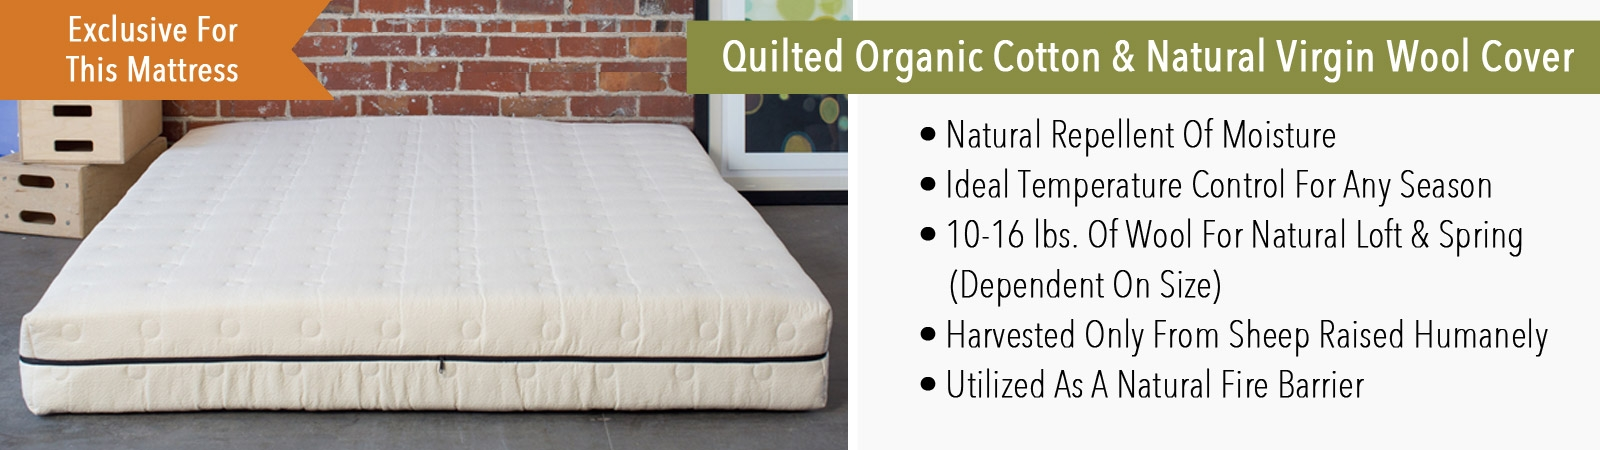 Quilted Organic Cotton and Natural Virgin Wool Cover